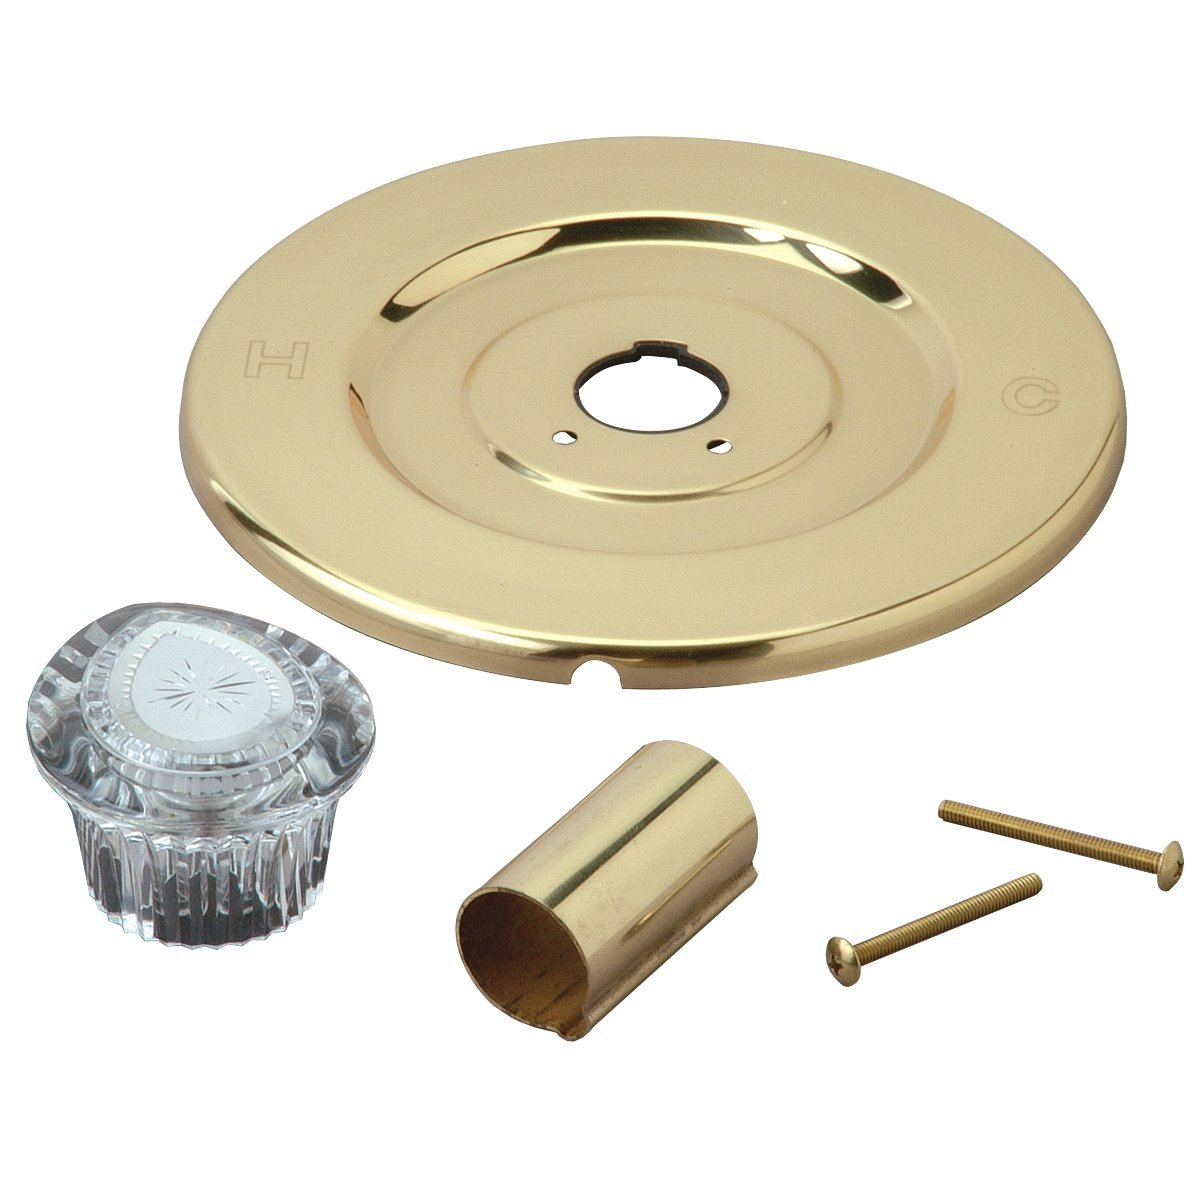 sk0231 tub and shower faucet rebuild kit for moen faucets for valley faucets starfire by brasscraft walmart com